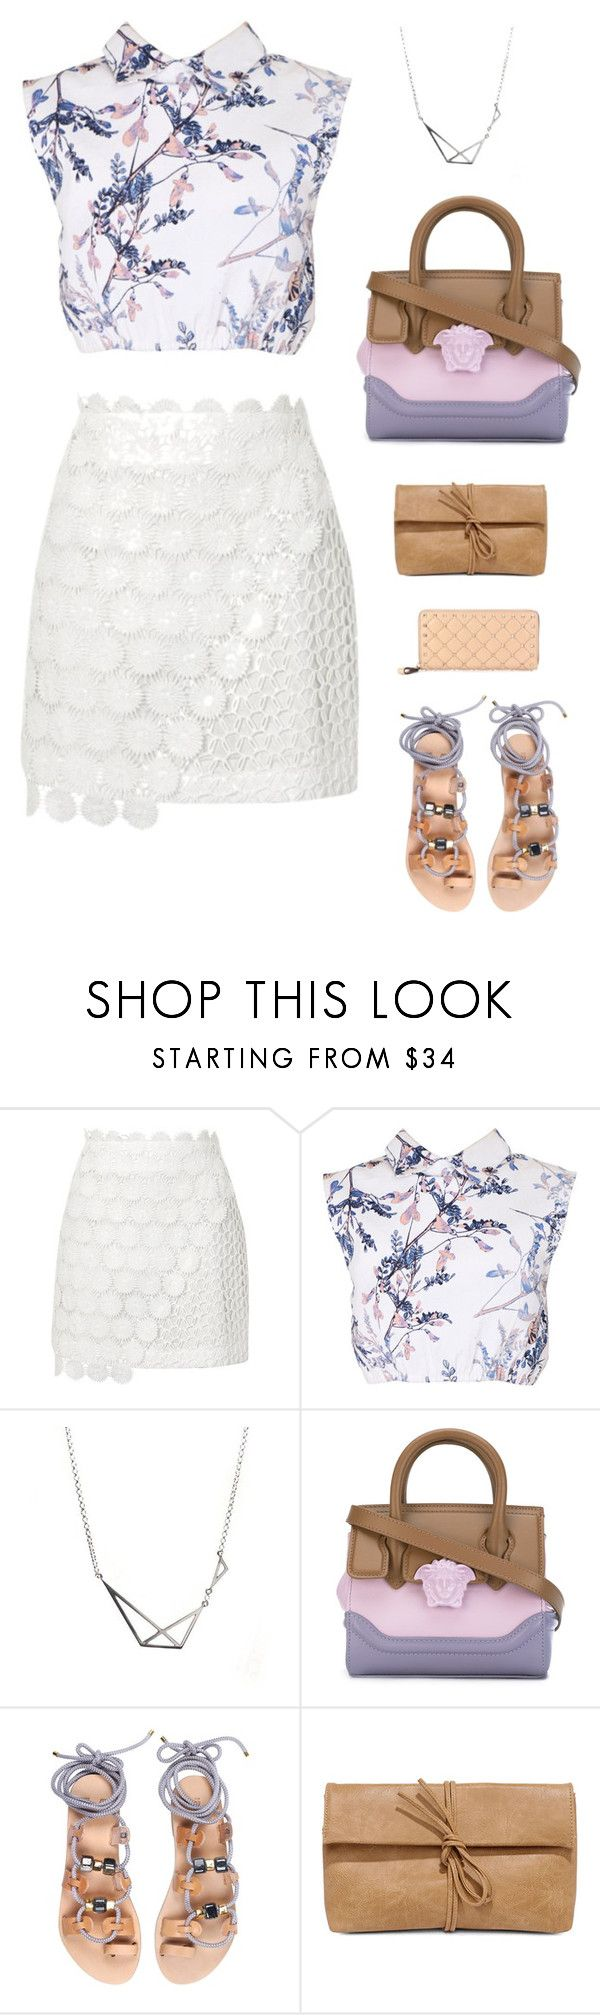 """""""Versace Small Palazzo Empire Tote Bag"""" by sol4nge ❤ liked on Polyvore featuring Topshop, may, Versace, Iris, LULUS, Valentino and festivalfashion"""